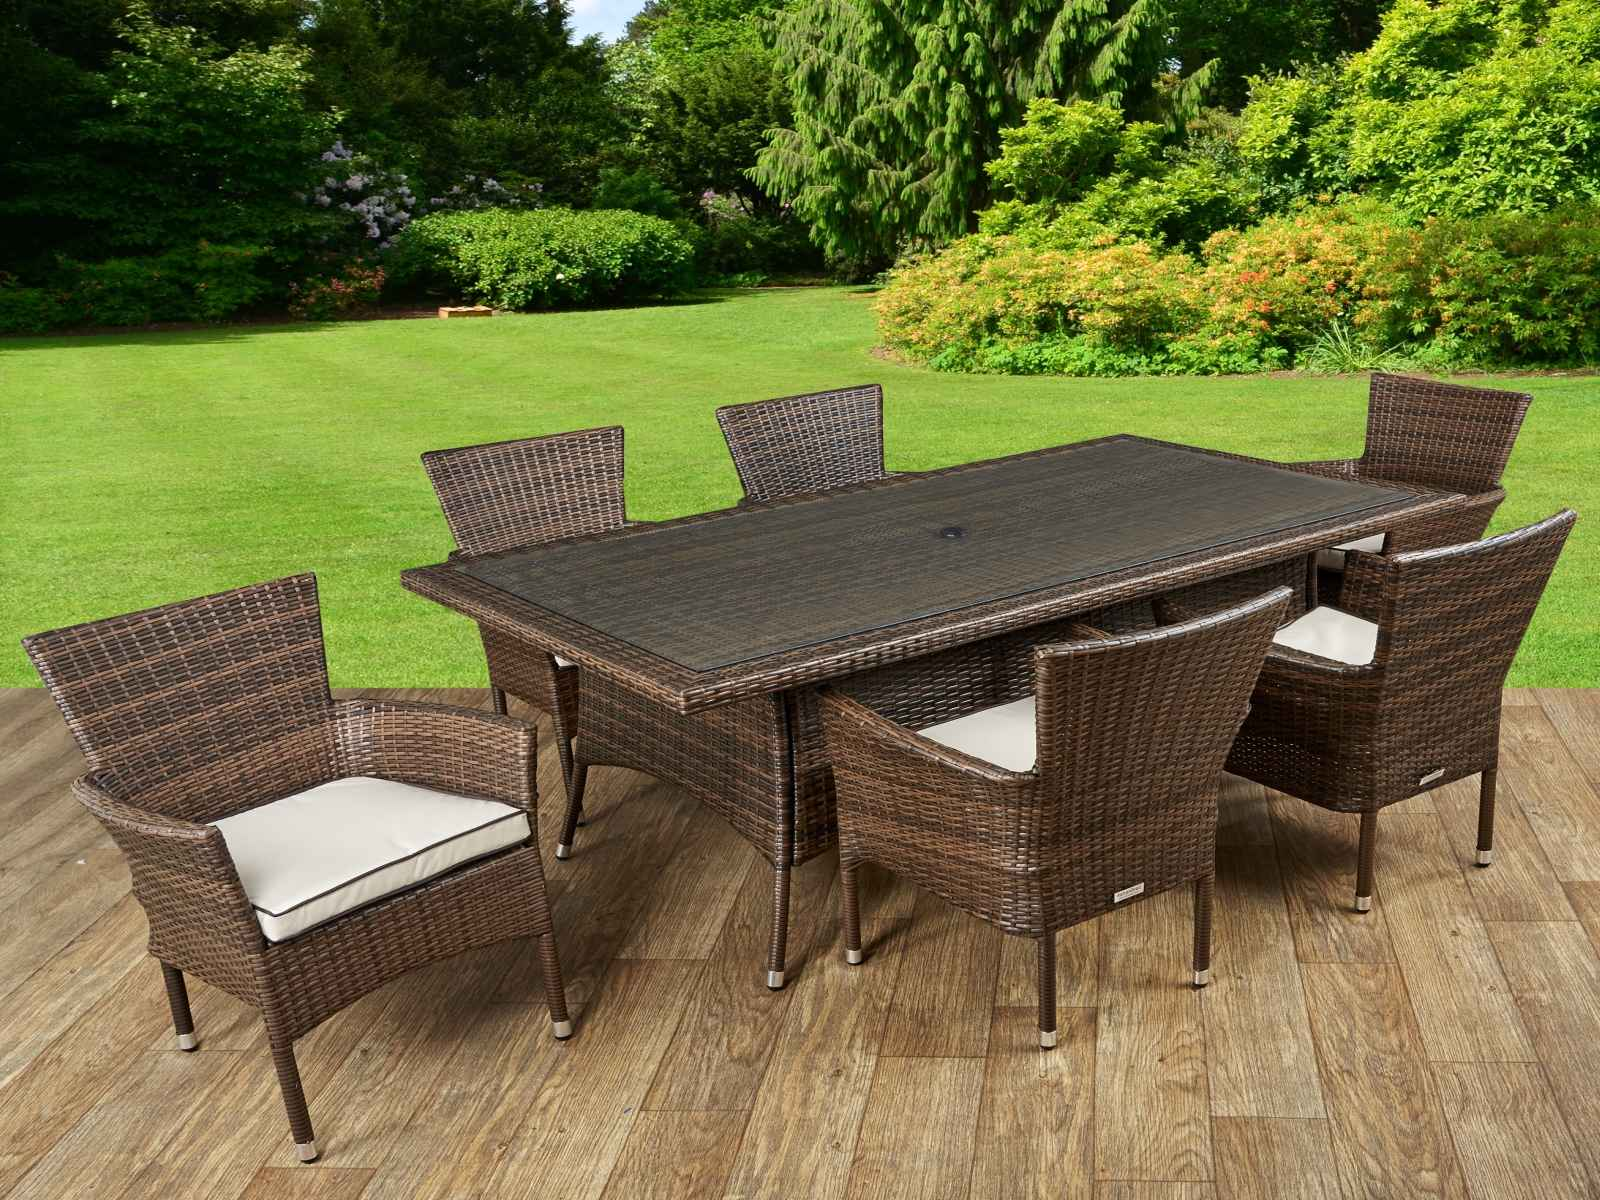 brilliant garden furniture u ltd wicker rattan sofa throughout - Garden Furniture 4 U Ltd